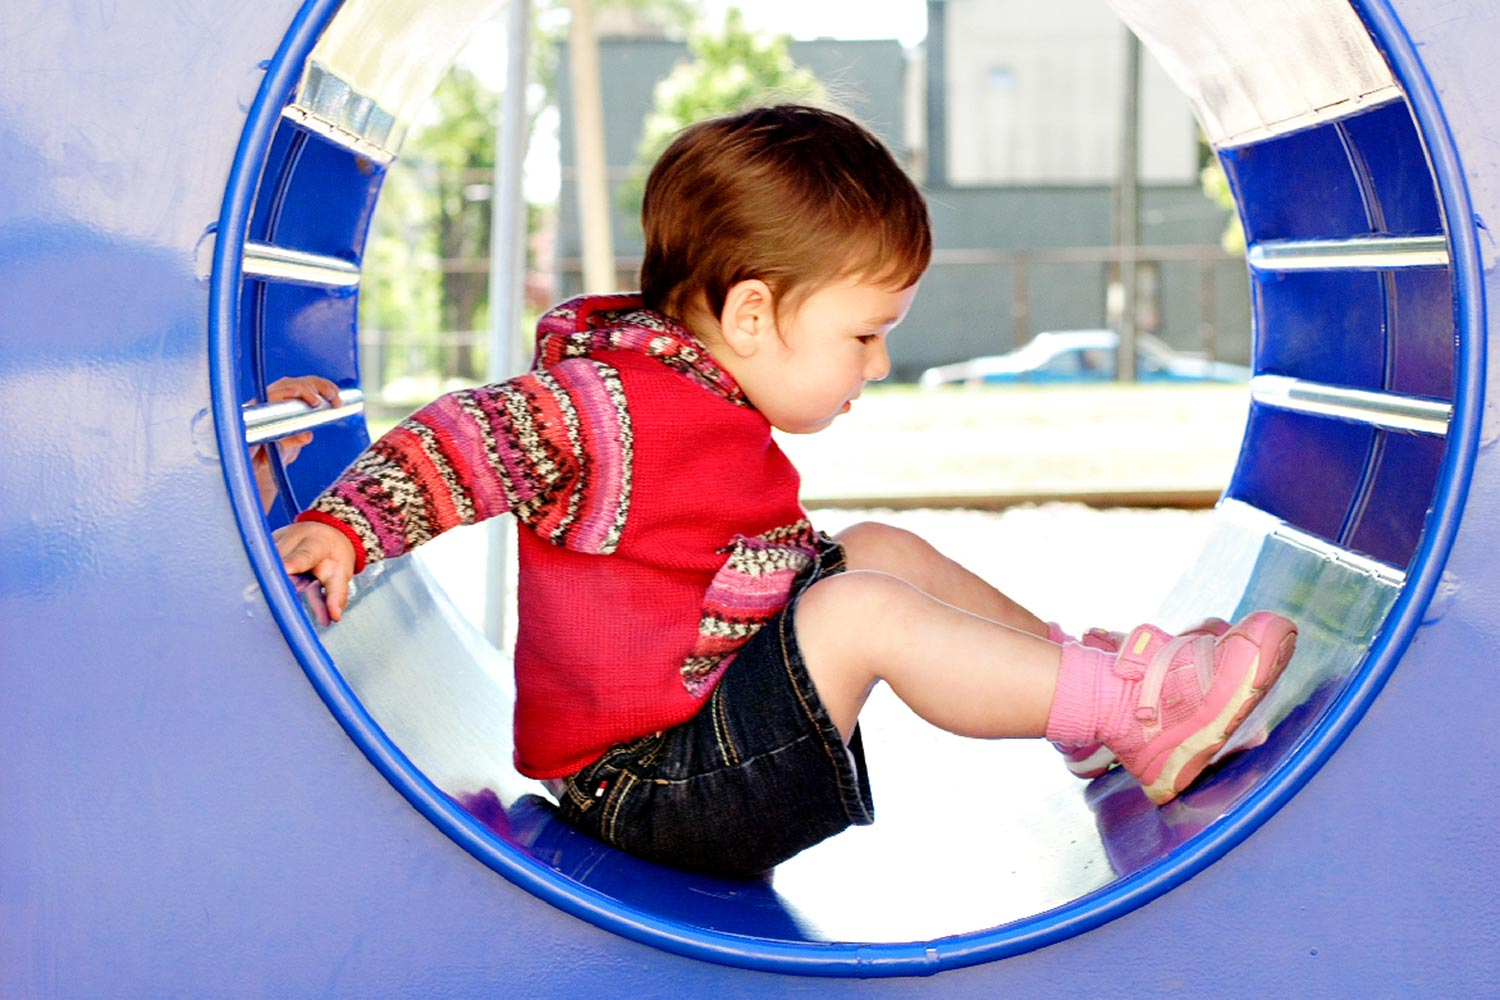 Profile view of toddler seated in a tubular playground structure, wearing a hoodie with sleeves, hood and kangaroo pocket worked in self-patterning yarn.